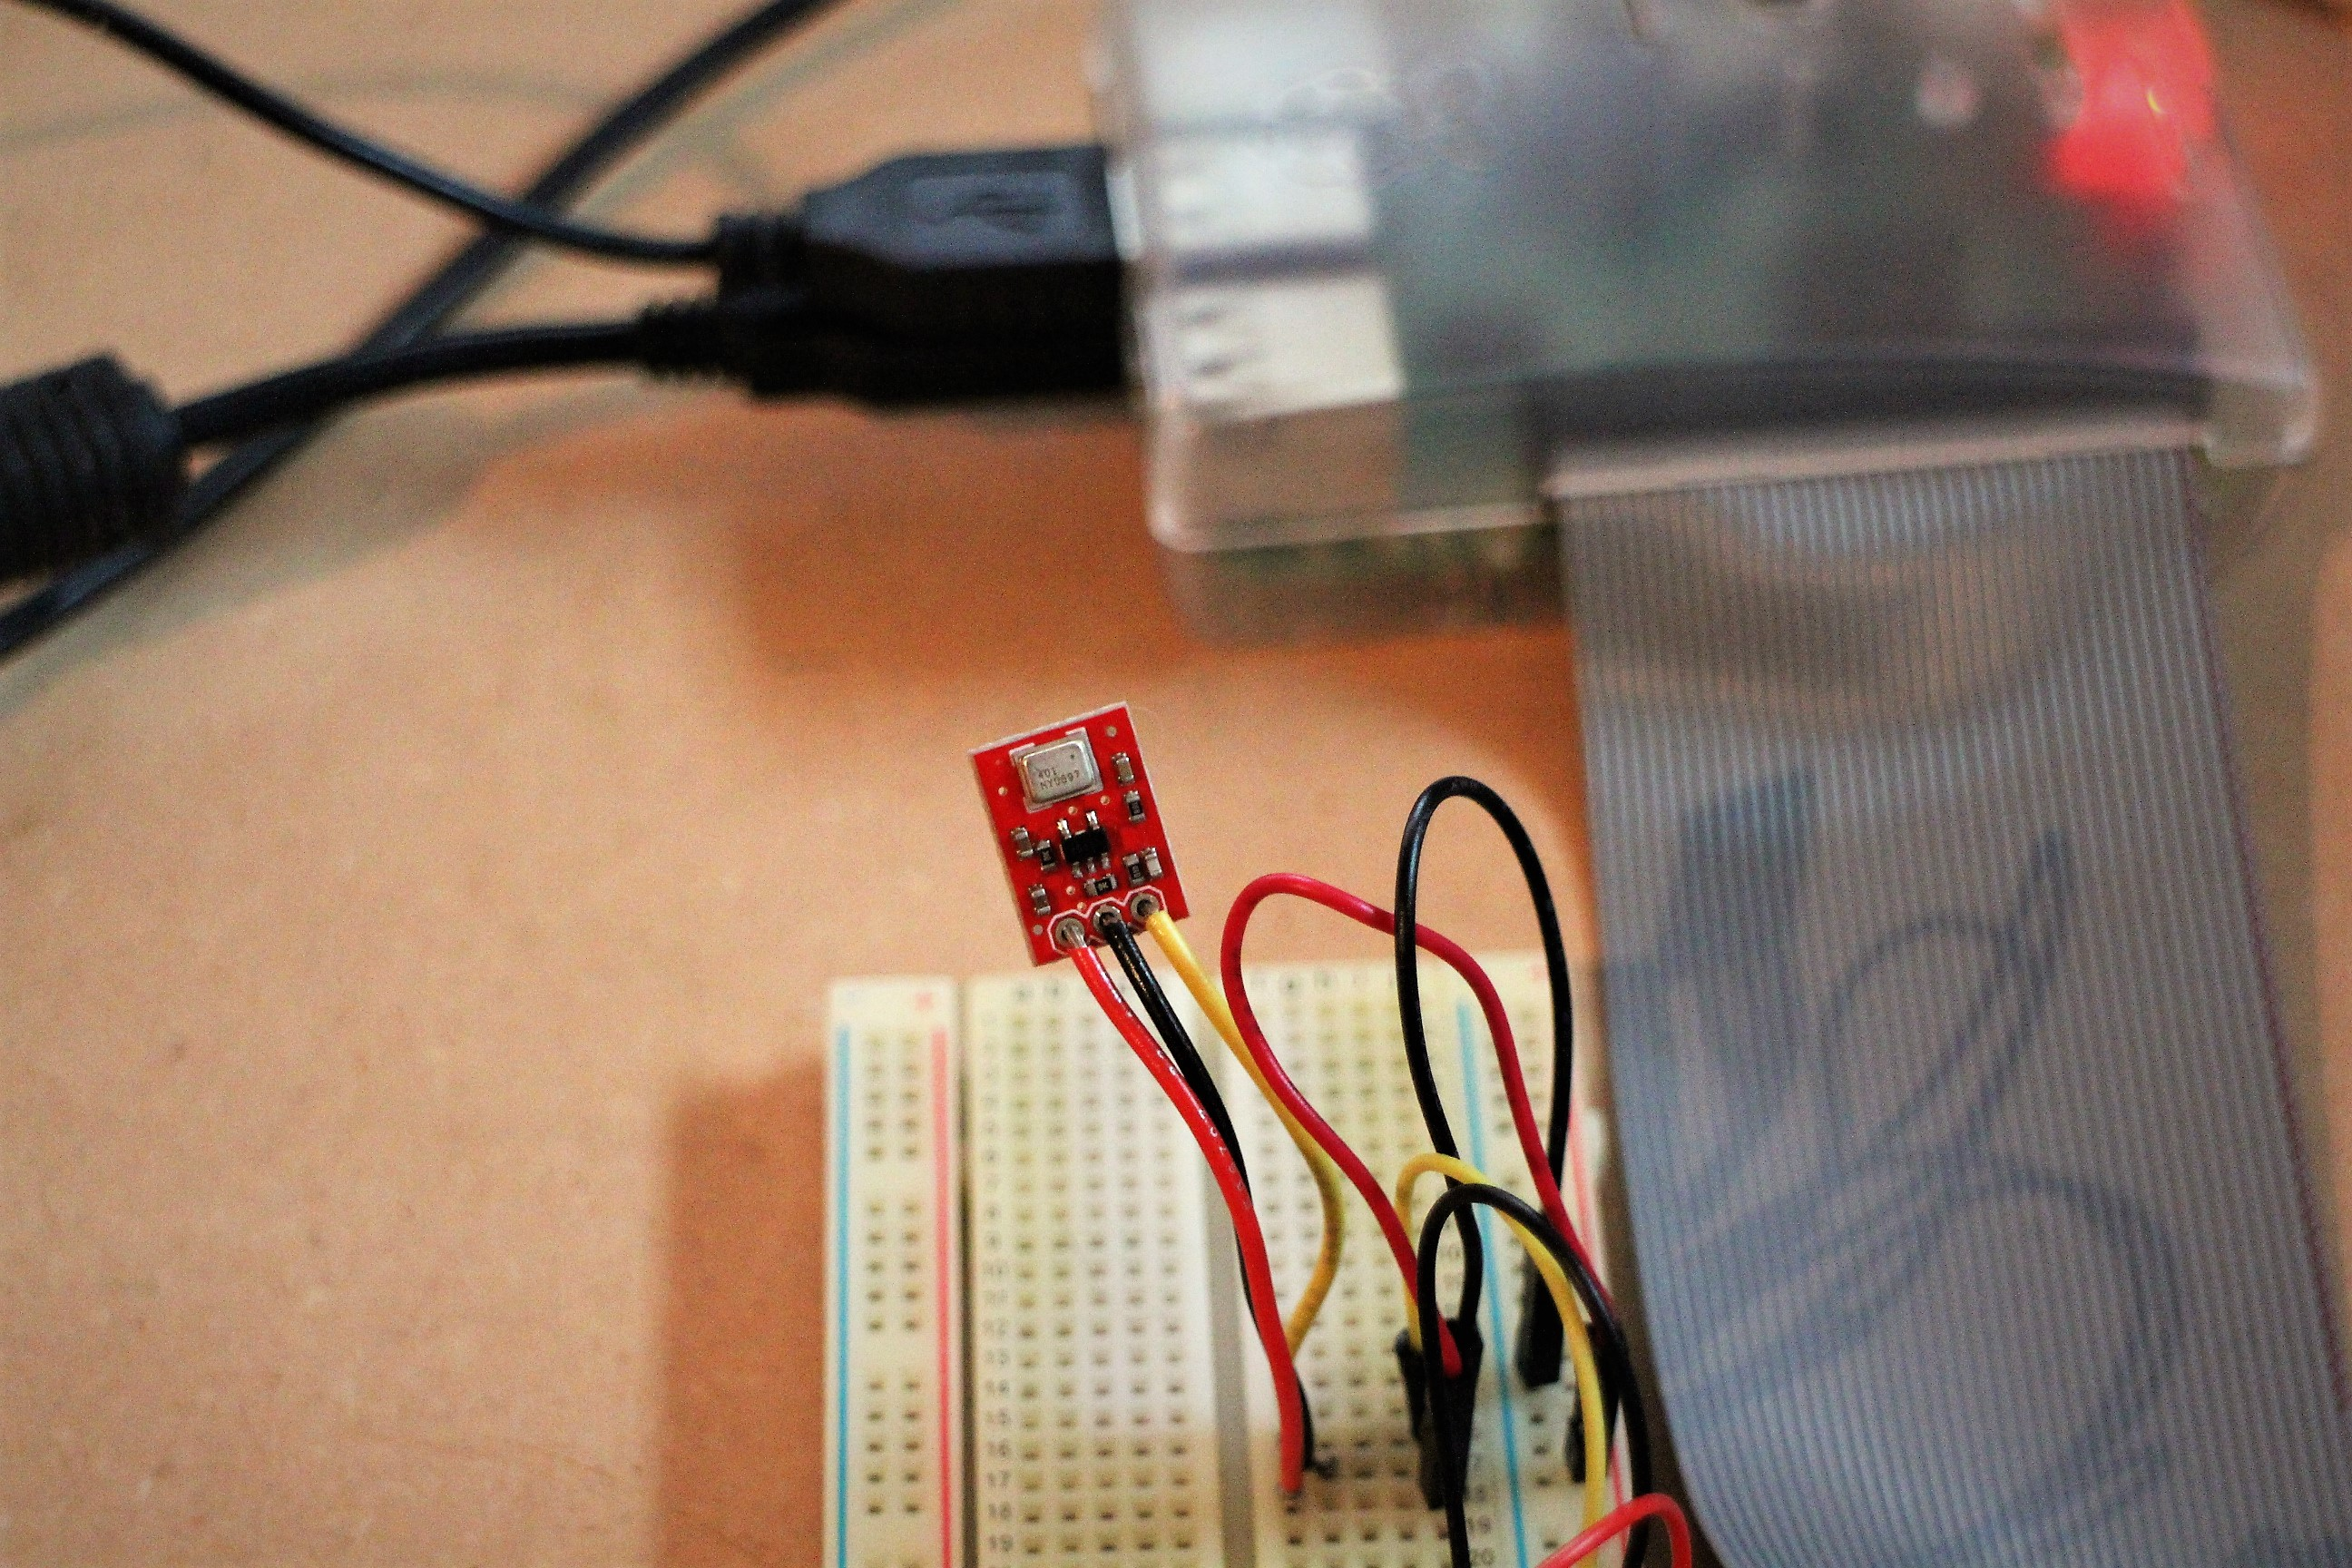 Bark Back Interactive Pet Monitor - learn sparkfun com